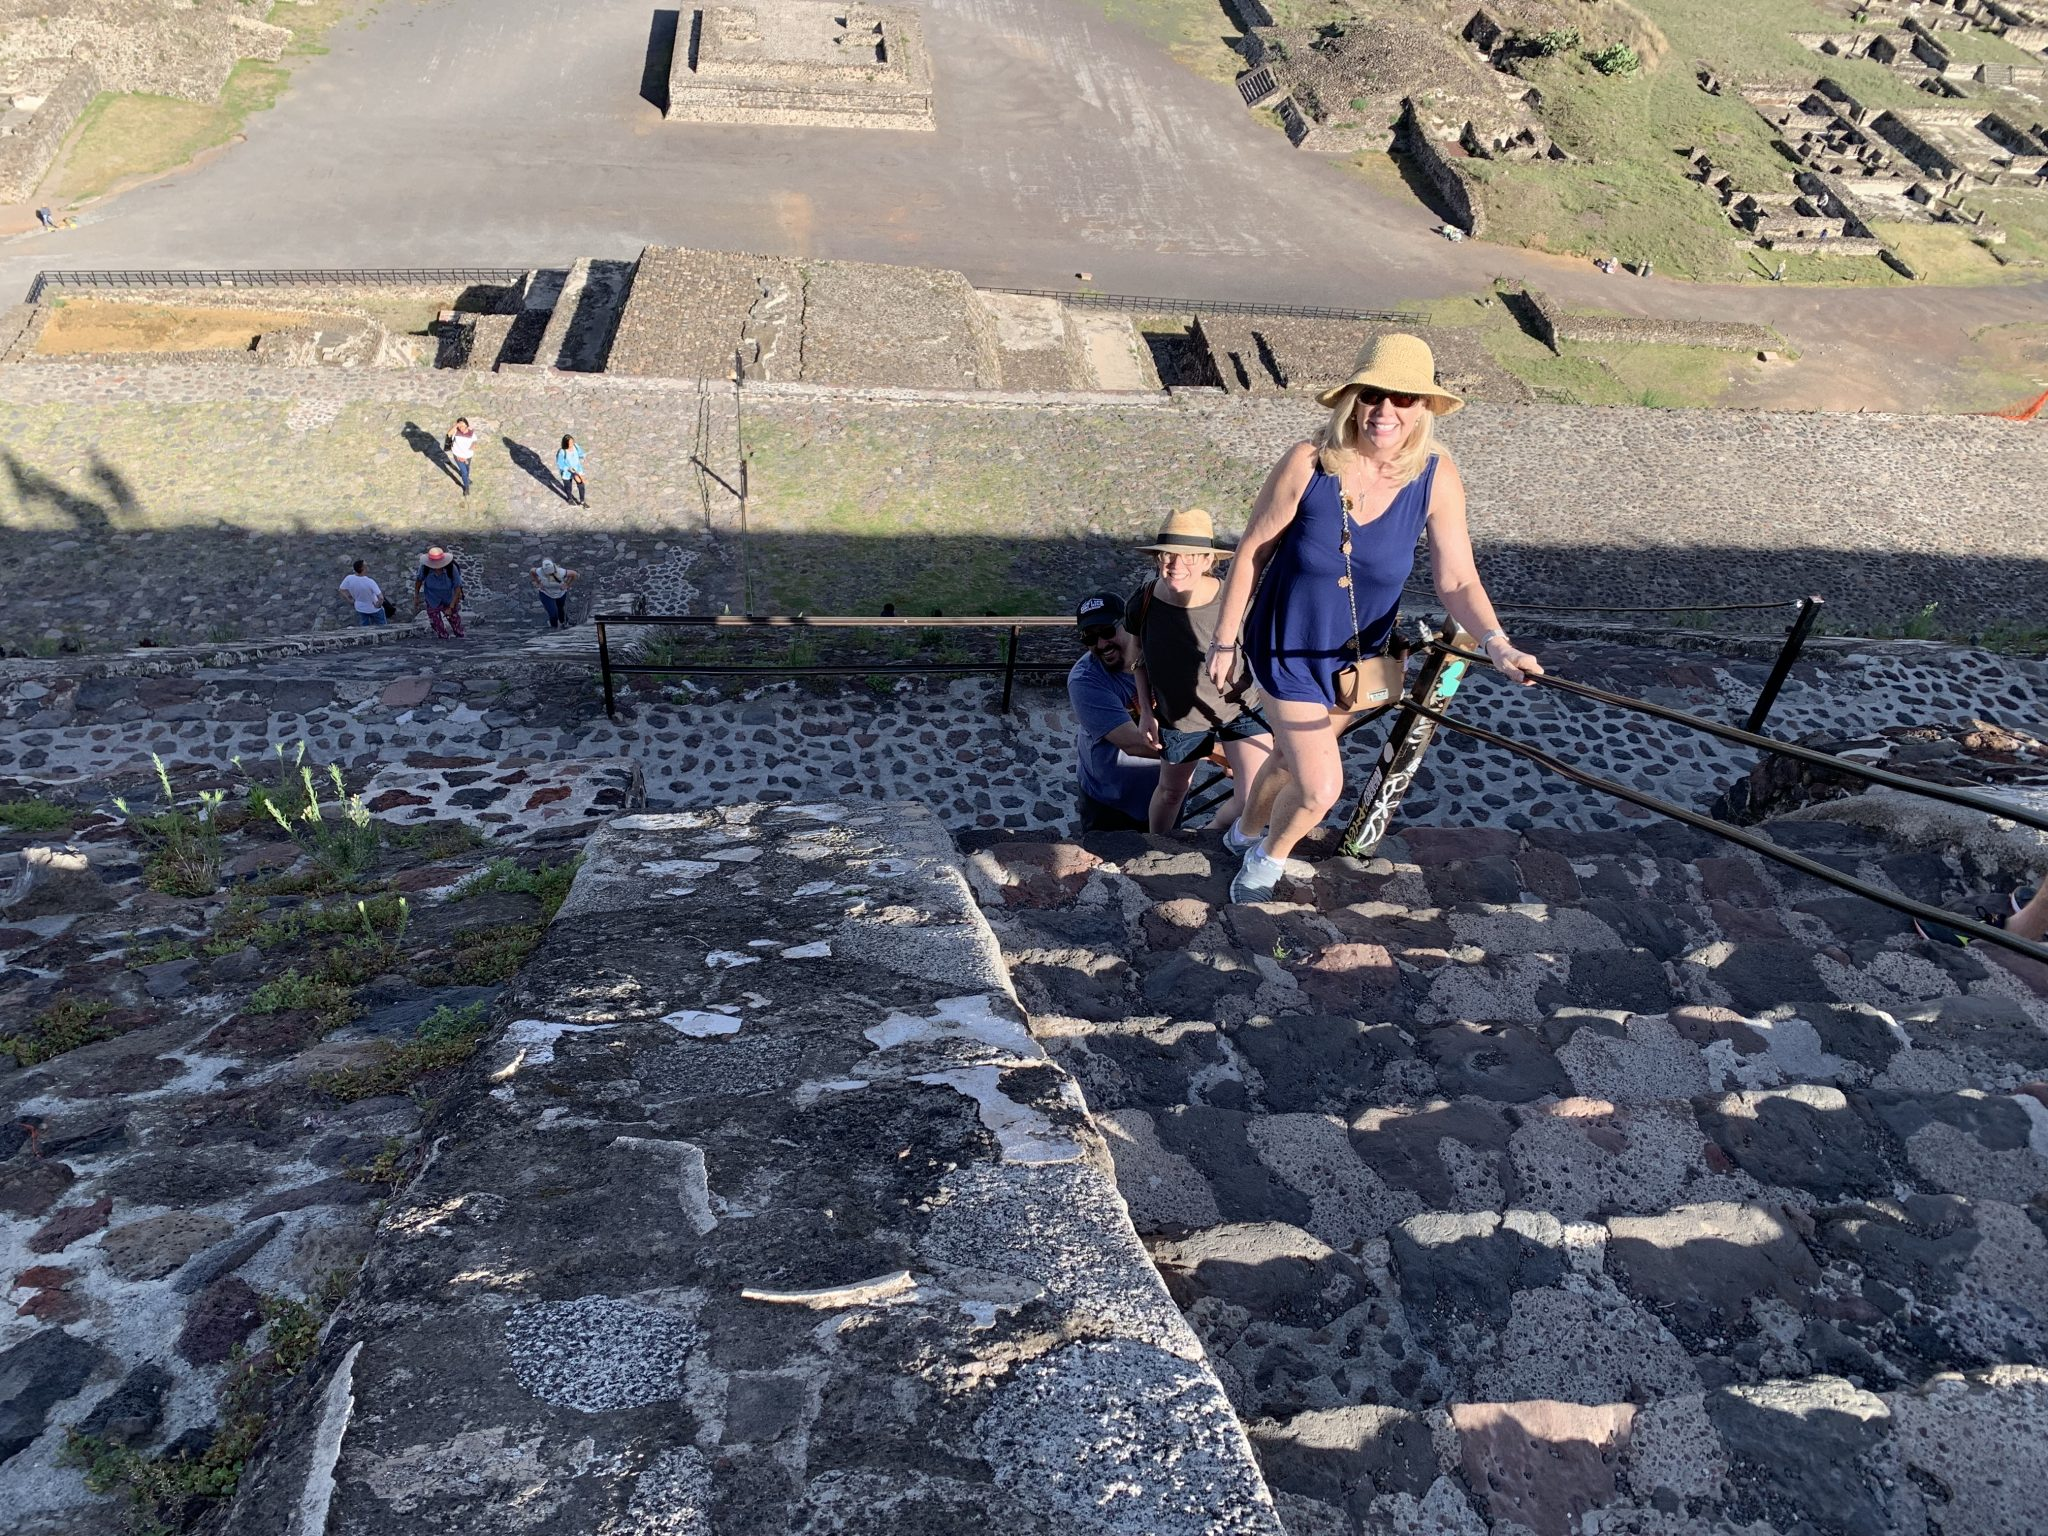 Climbing The Pyramid Of The Sun Teotihuacan